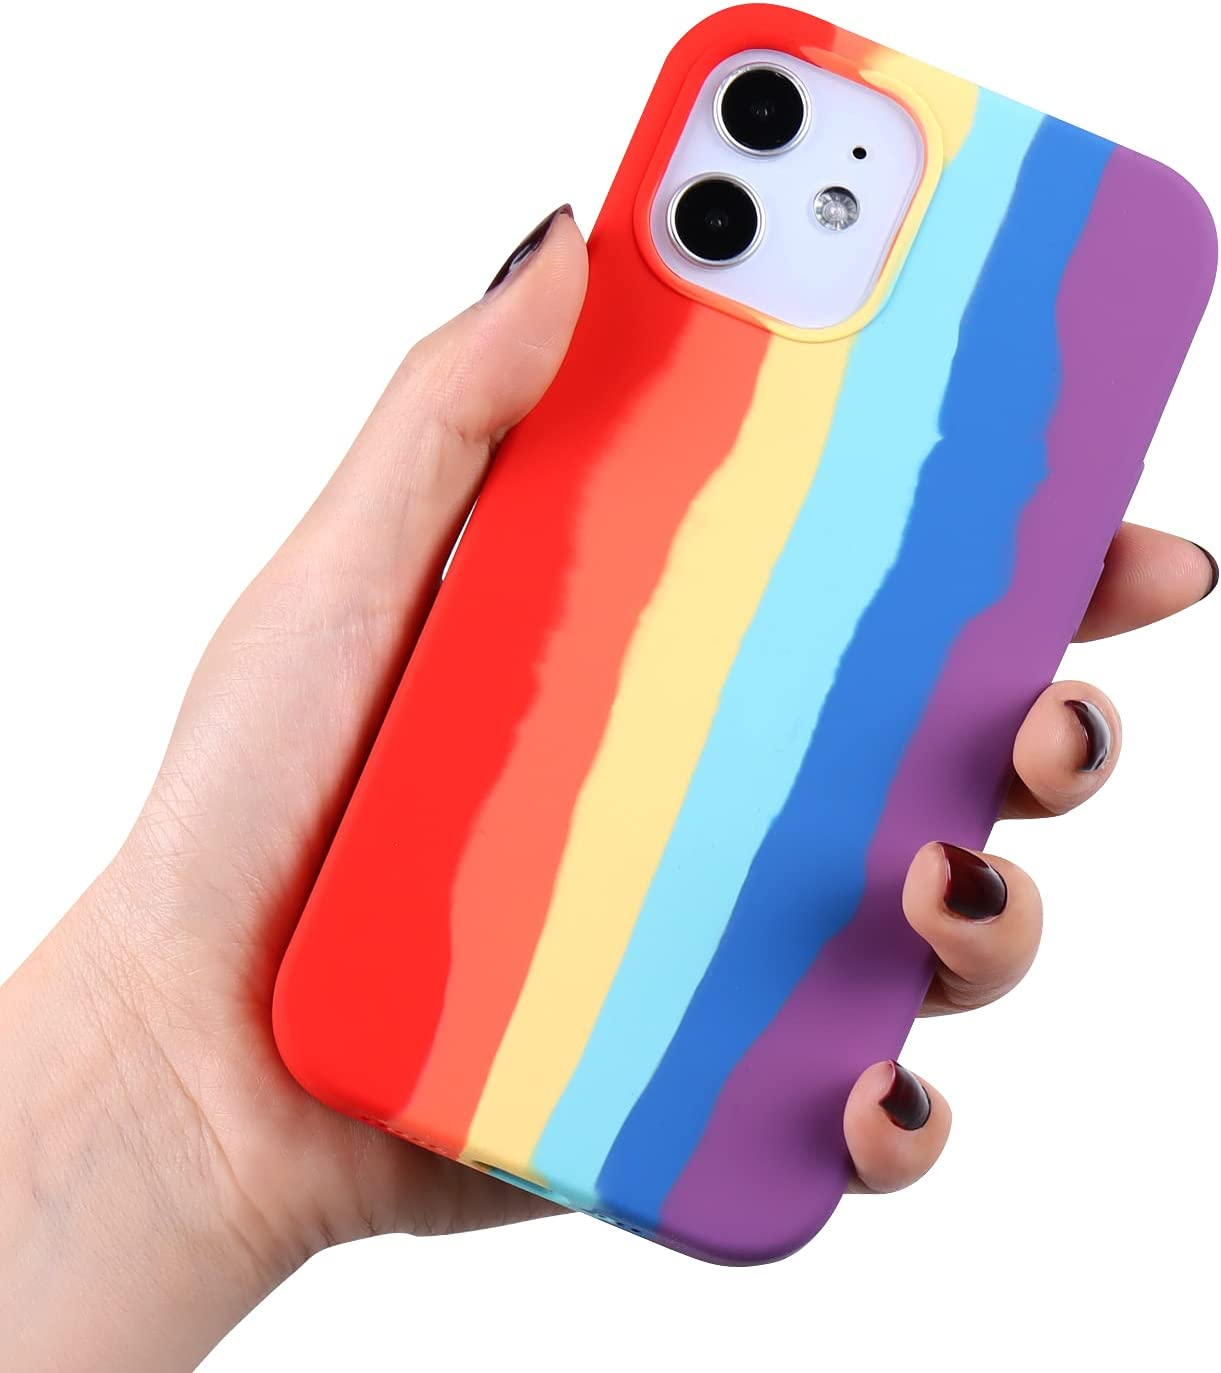 Rongda Cute Rainbow Case Compatible with iPhone 12 pro max (6.7),Colorful Liquid Silicone Full-Body Shockproof Protective Cover for Women and Girls